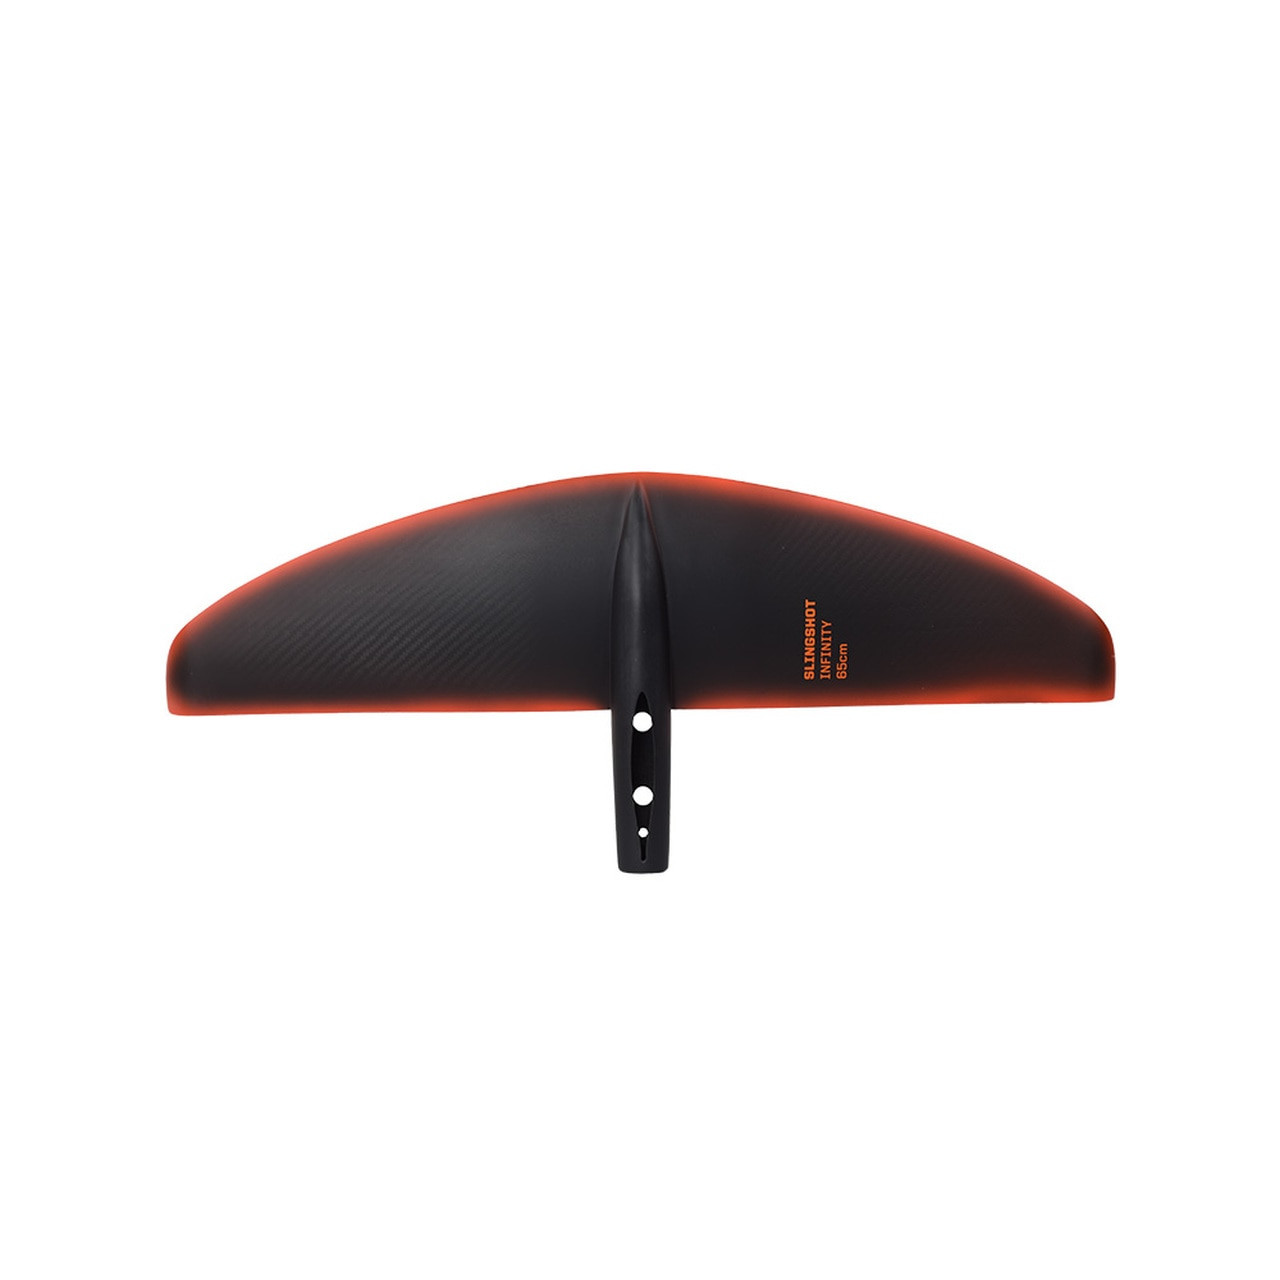 HOVER GLIDE INFINITY 65 CM CARBON WING